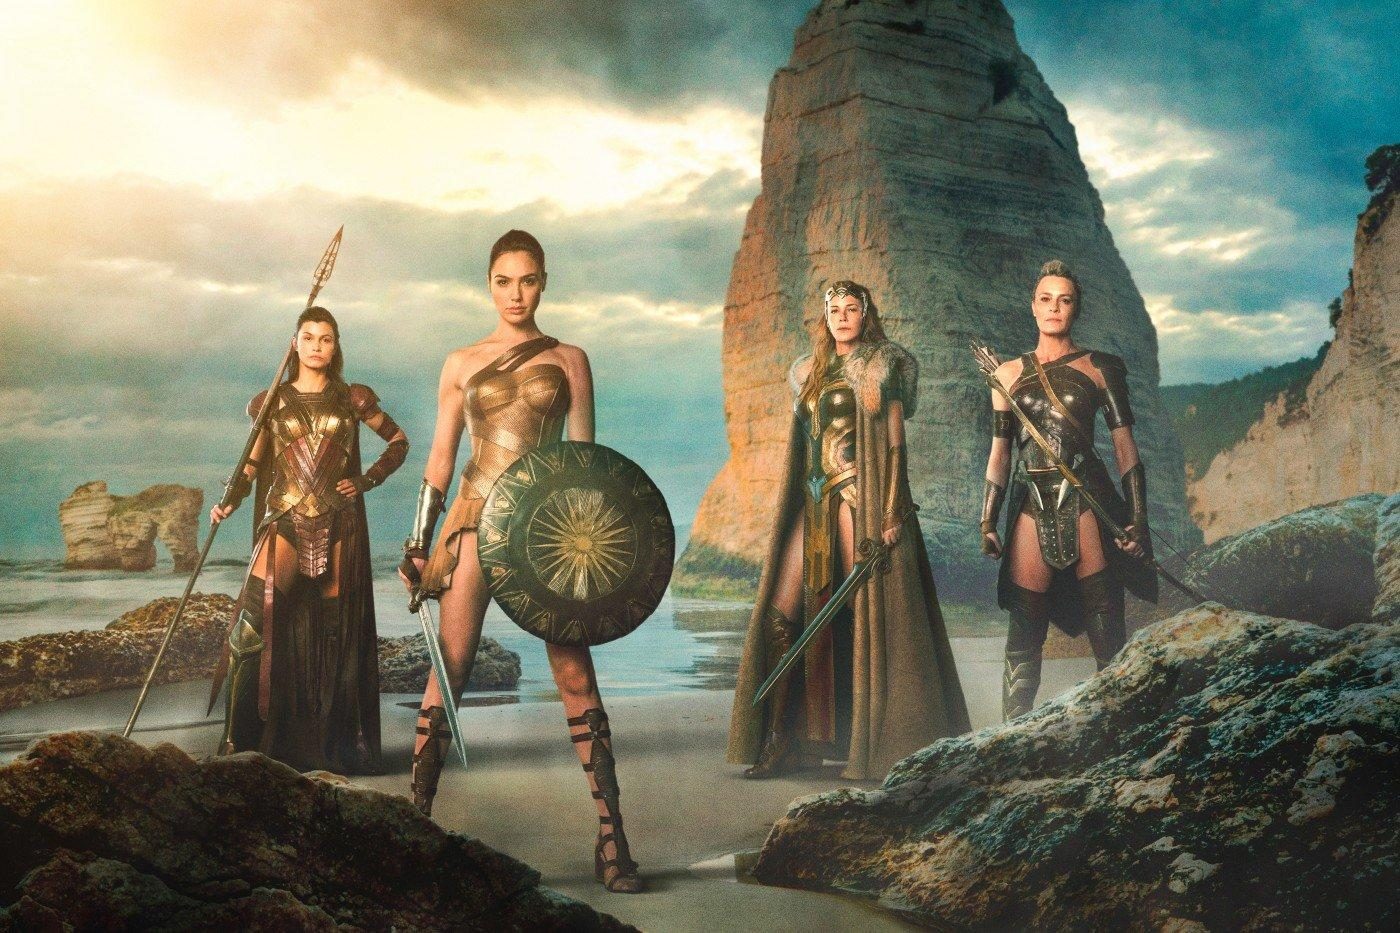 'Justice League' appears to make costumes sexier for Amazons